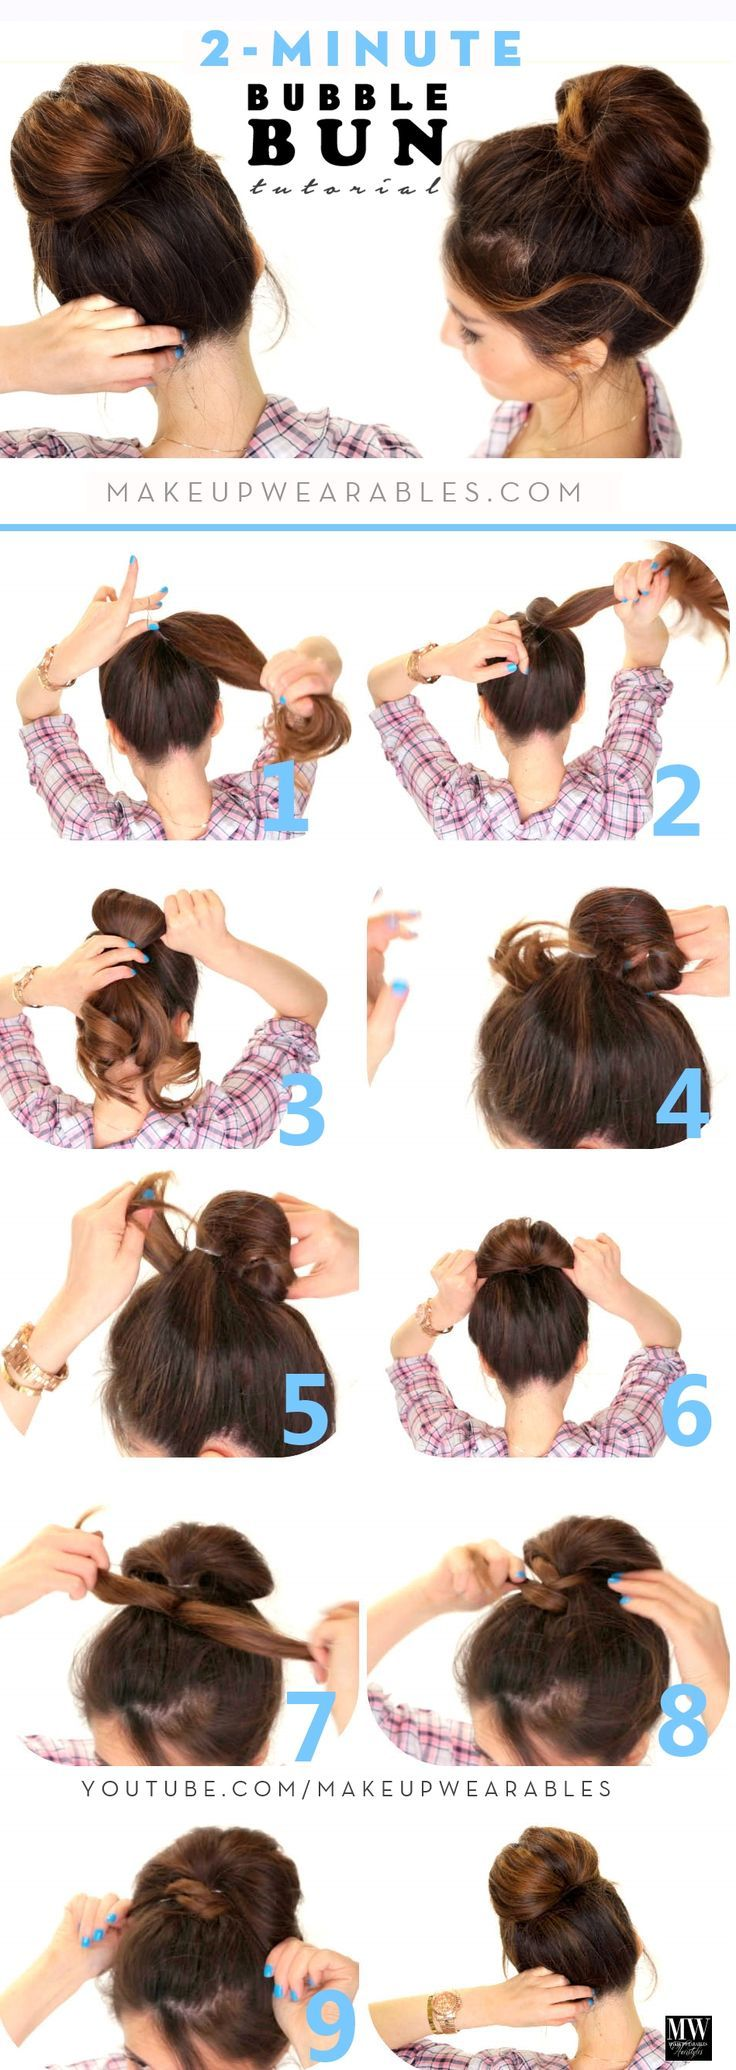 ideas and decor updo hair style haircuts